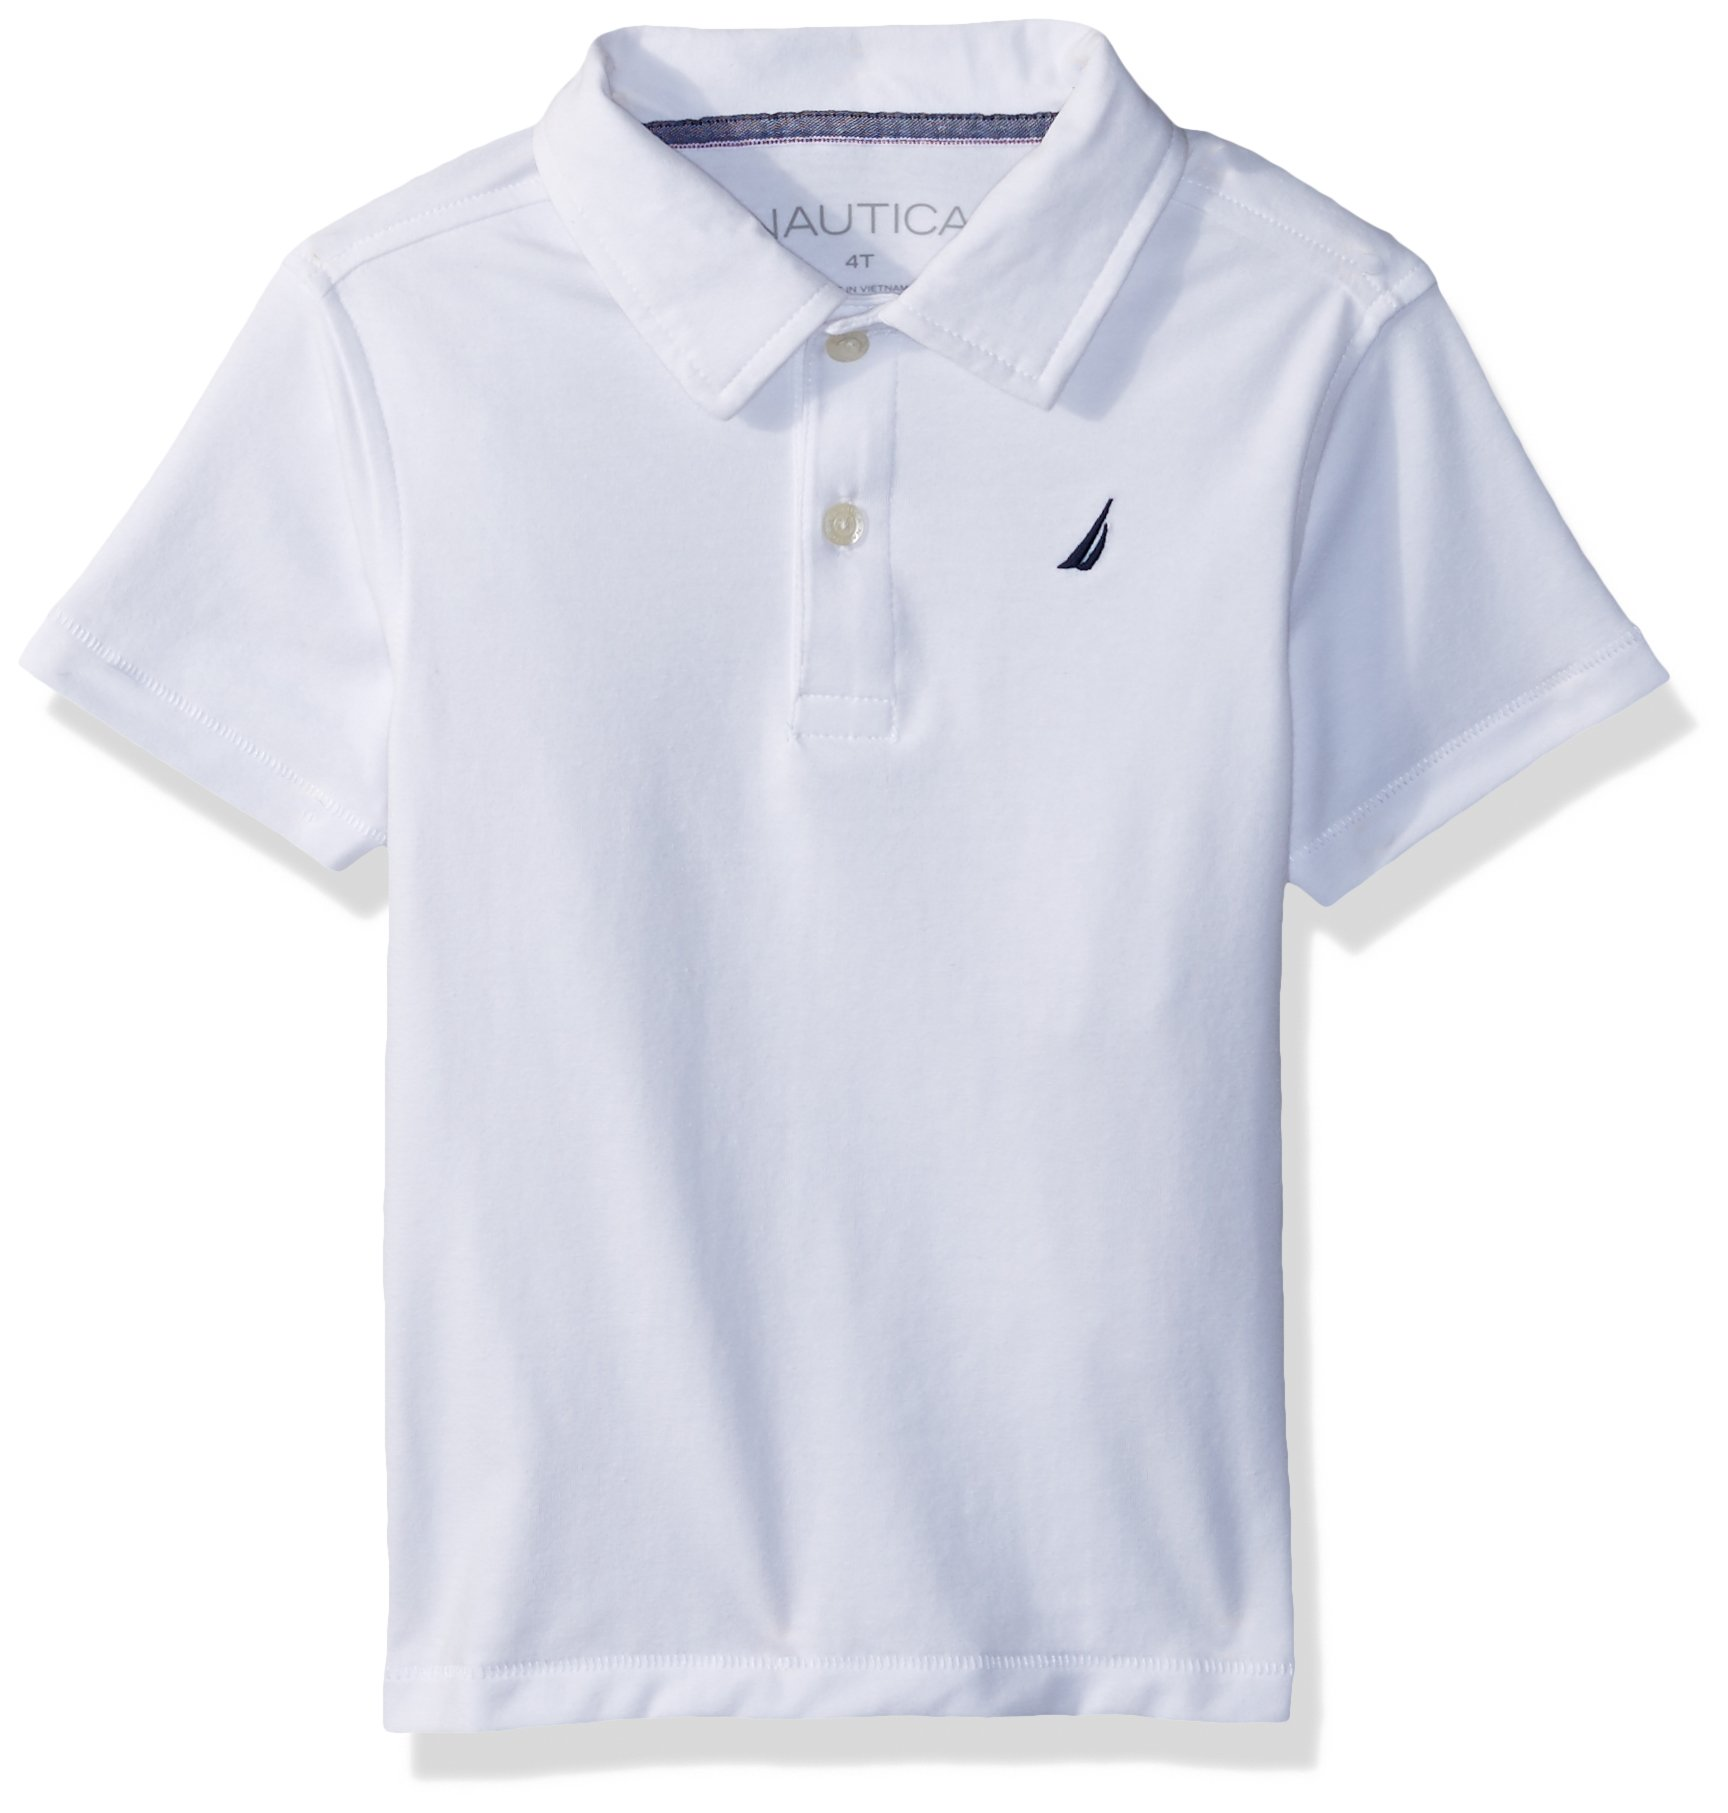 Nautica Toddler Boys' Short Sleeve Solid Deck Stretch Polo, Ruddy White, 4T